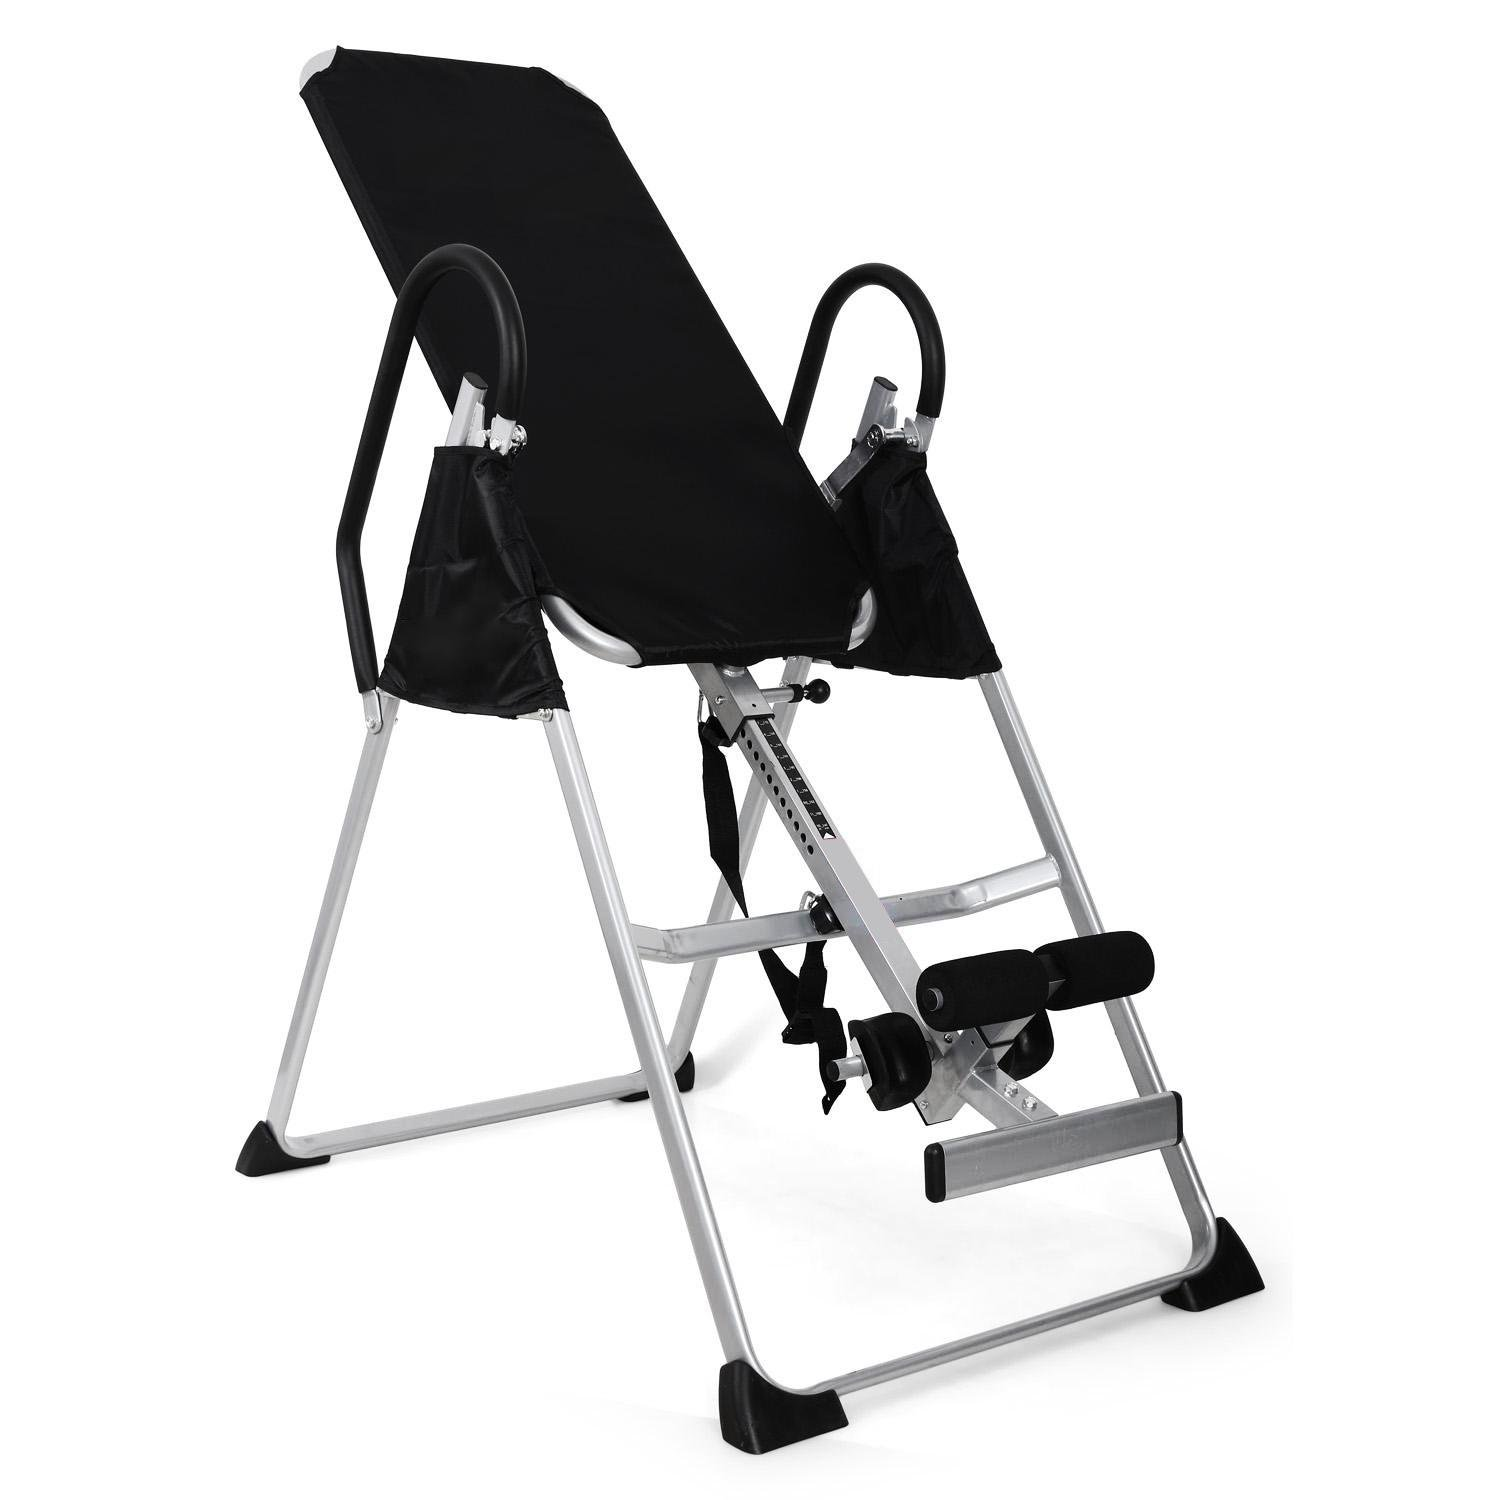 Inversion Invert Therapy Exercise Table Black/Silver